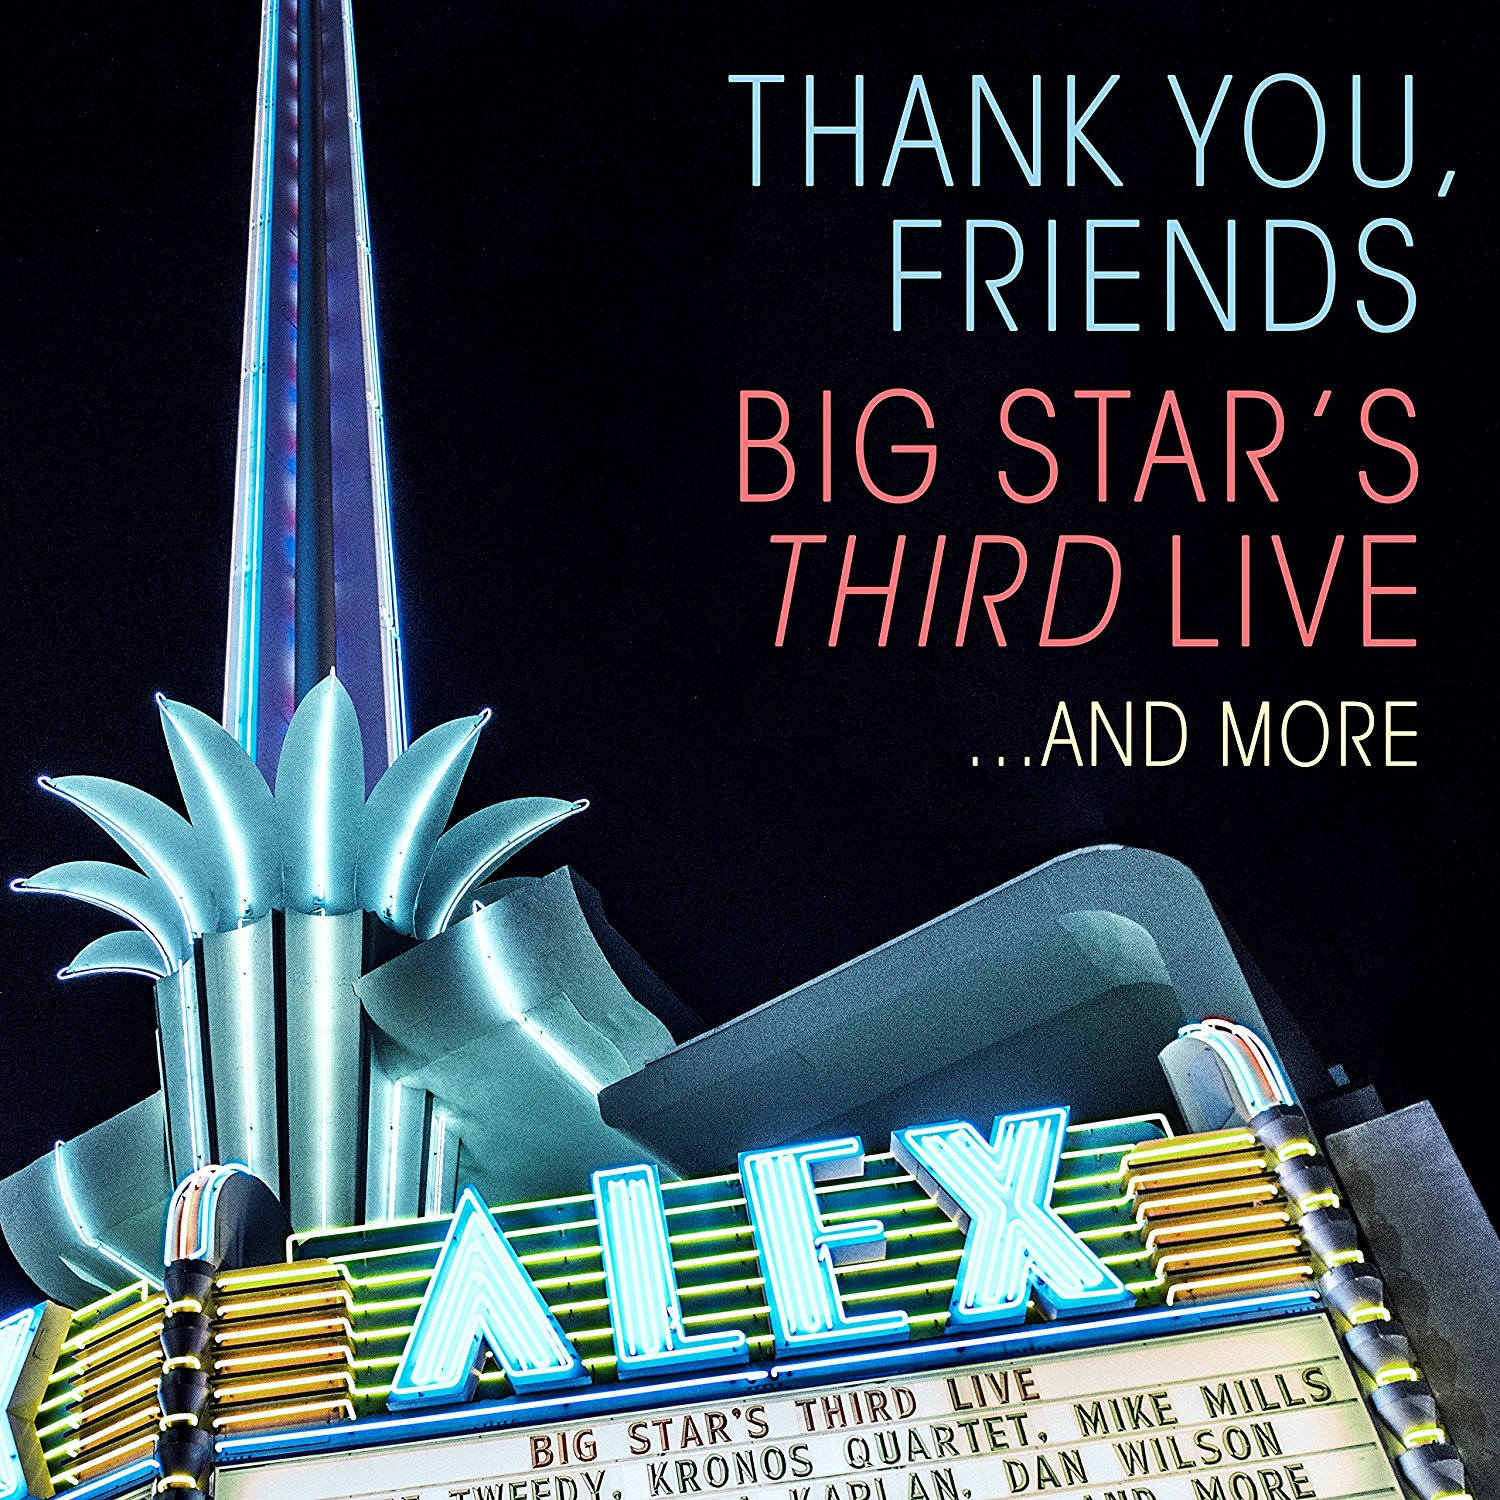 Big Stars Third Live - Thank You, Friends: Big Star's Third Live... [2 CD]